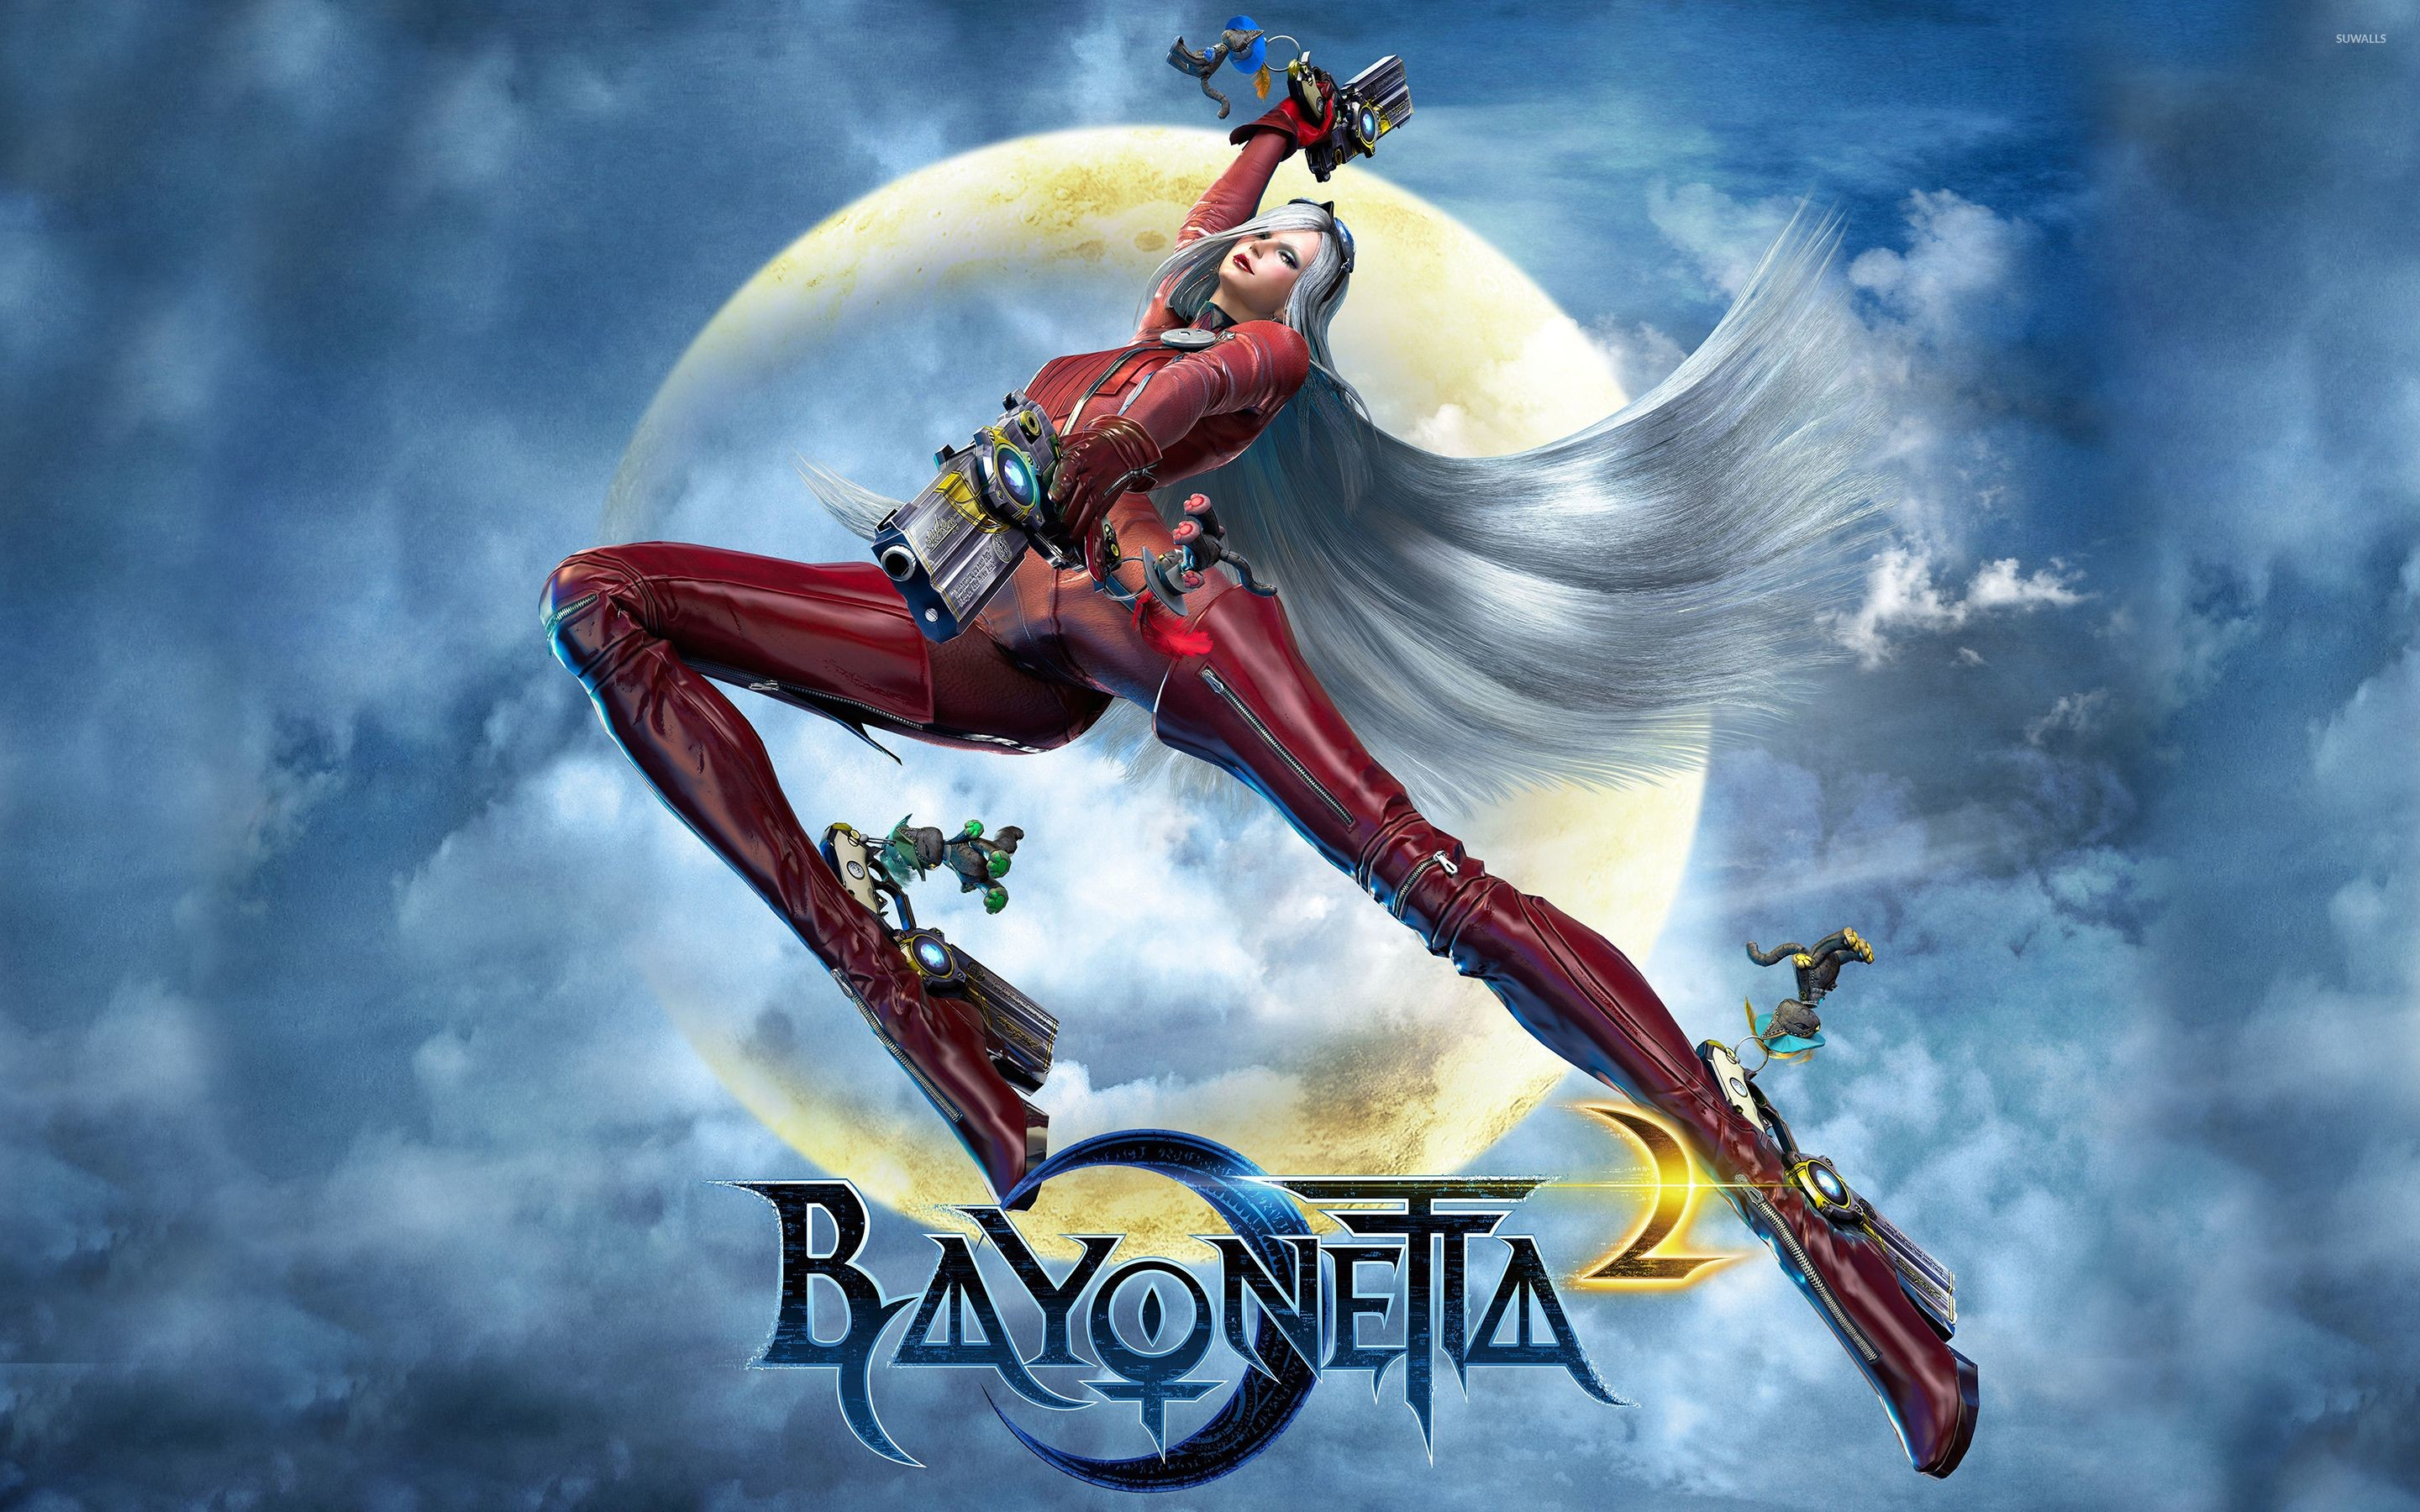 2880x1800 Bayonetta 2 - Jeanne Full HD Wallpaper and Background Image .